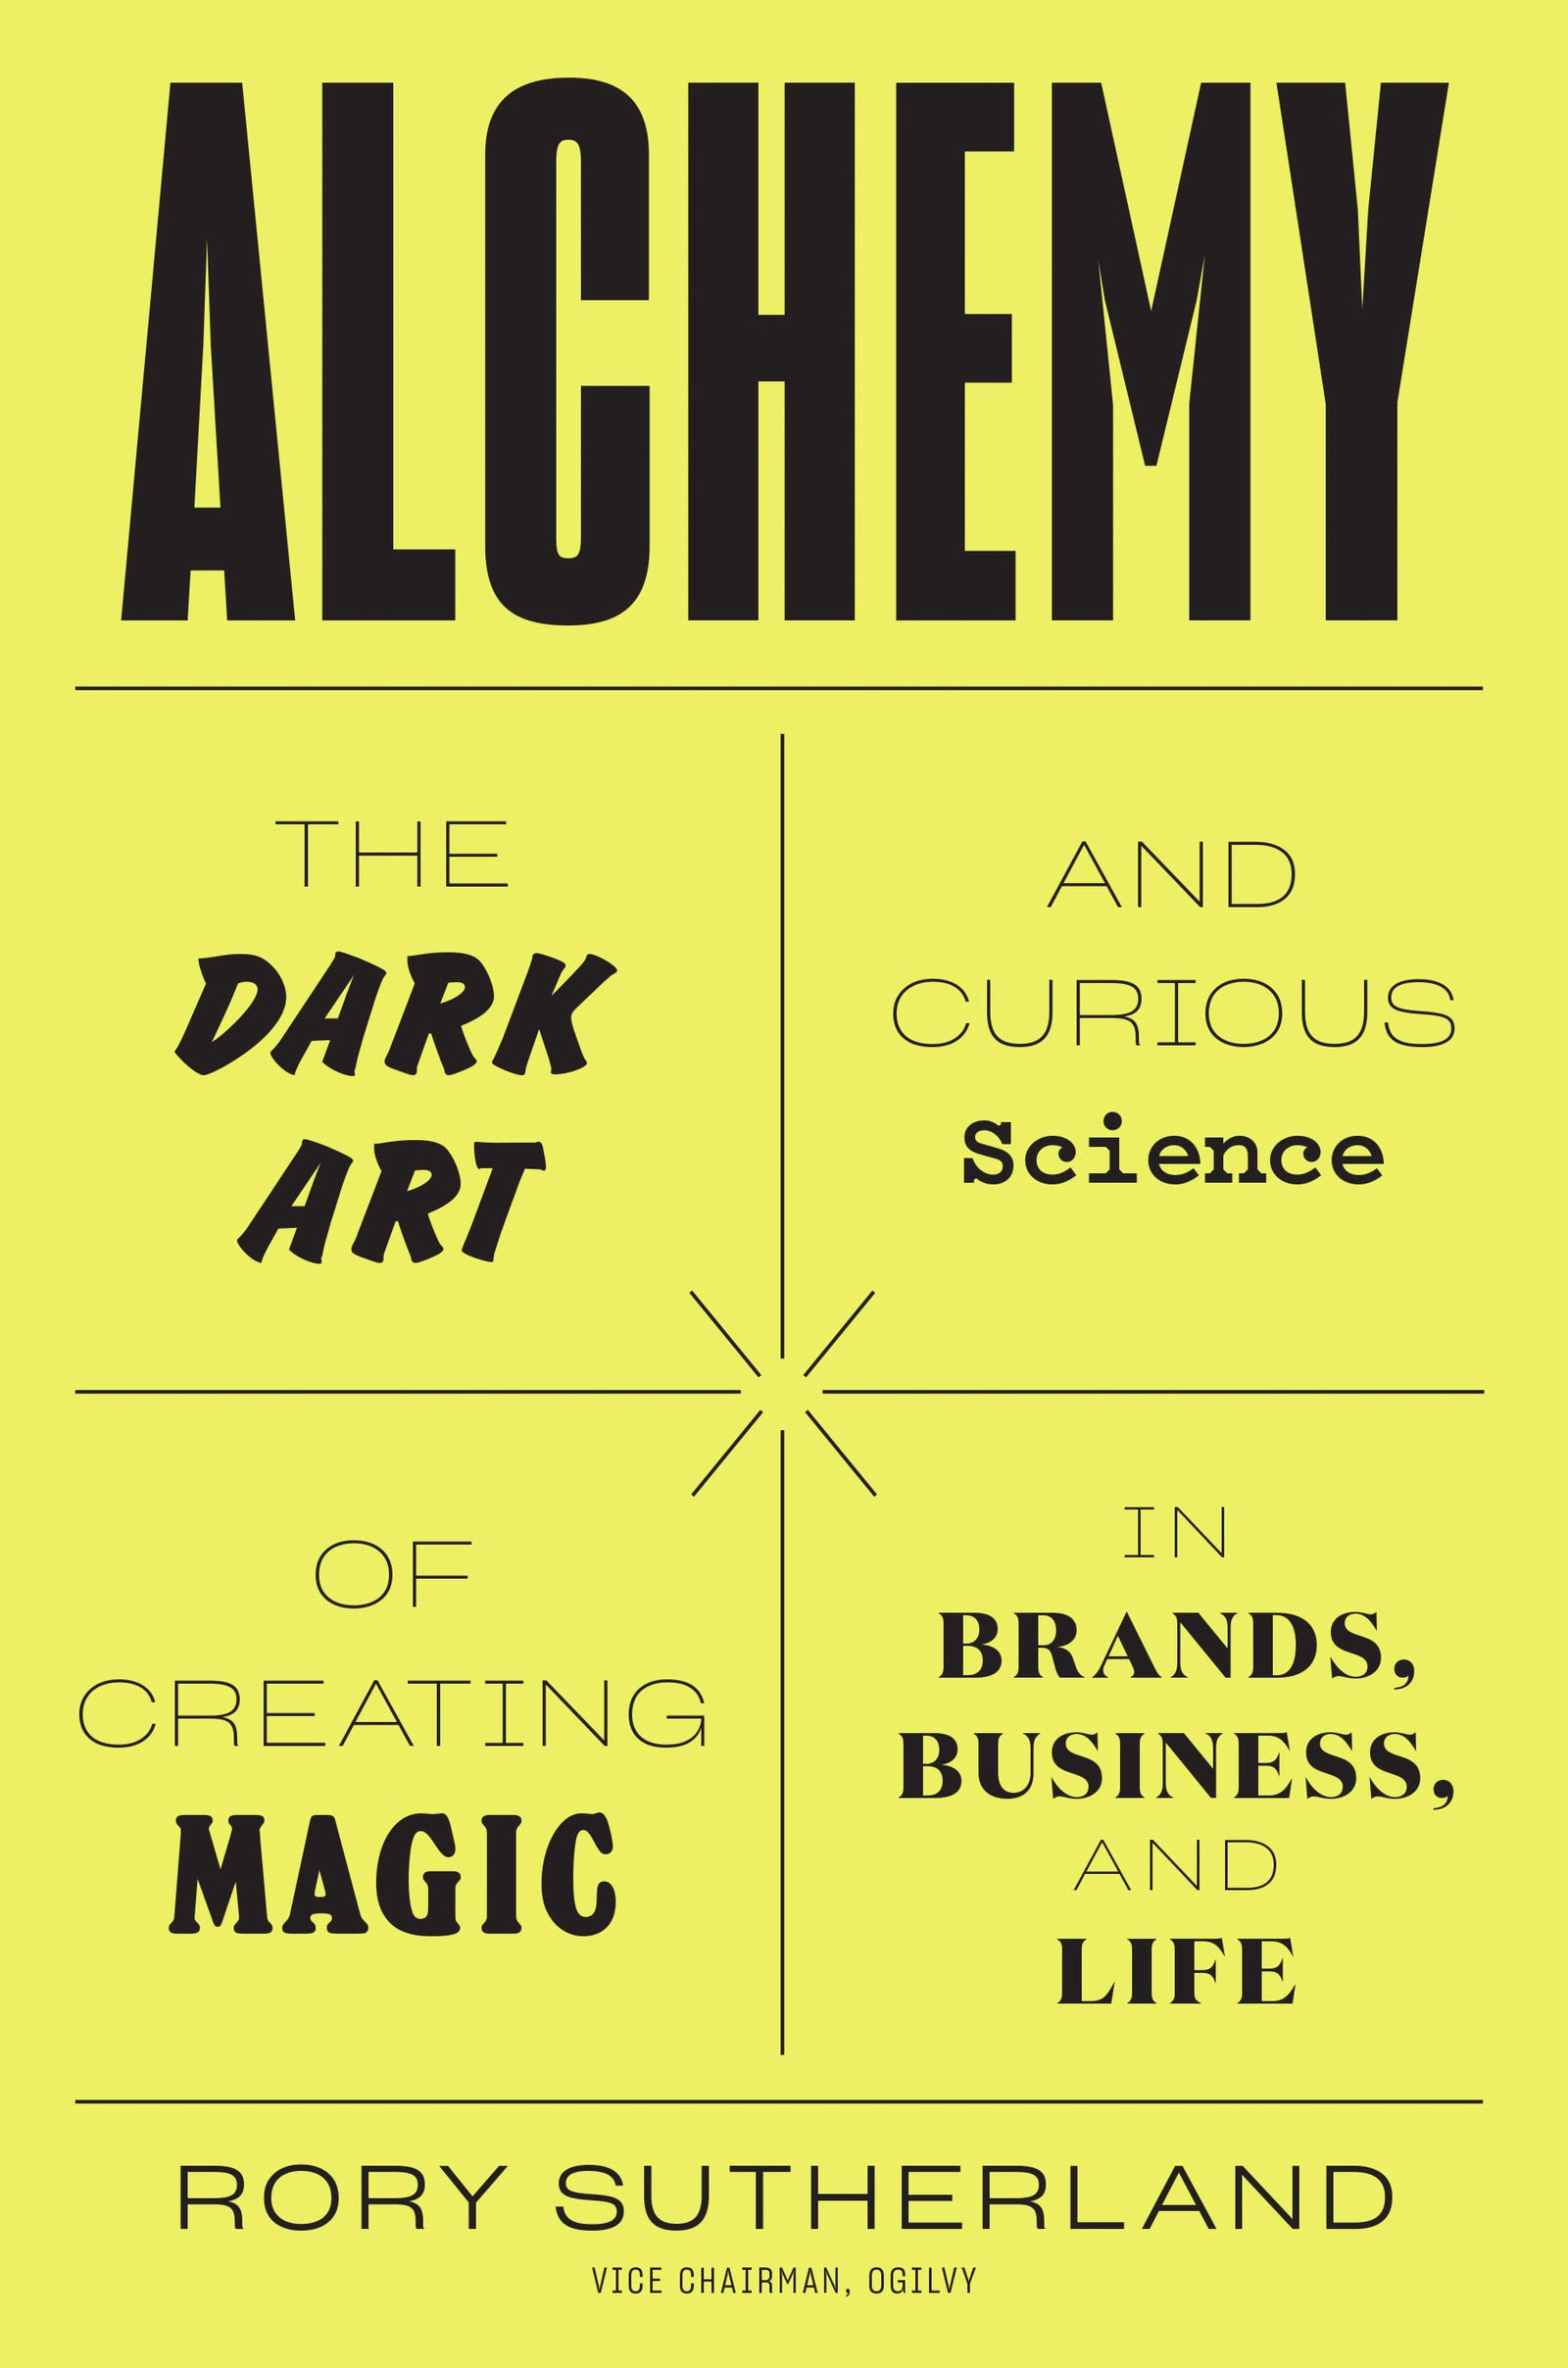 Alchemy: The Dark Art and Curious Science of Creating Magic in Brands - Sutherland, Rory - Amazon.de: Bücher